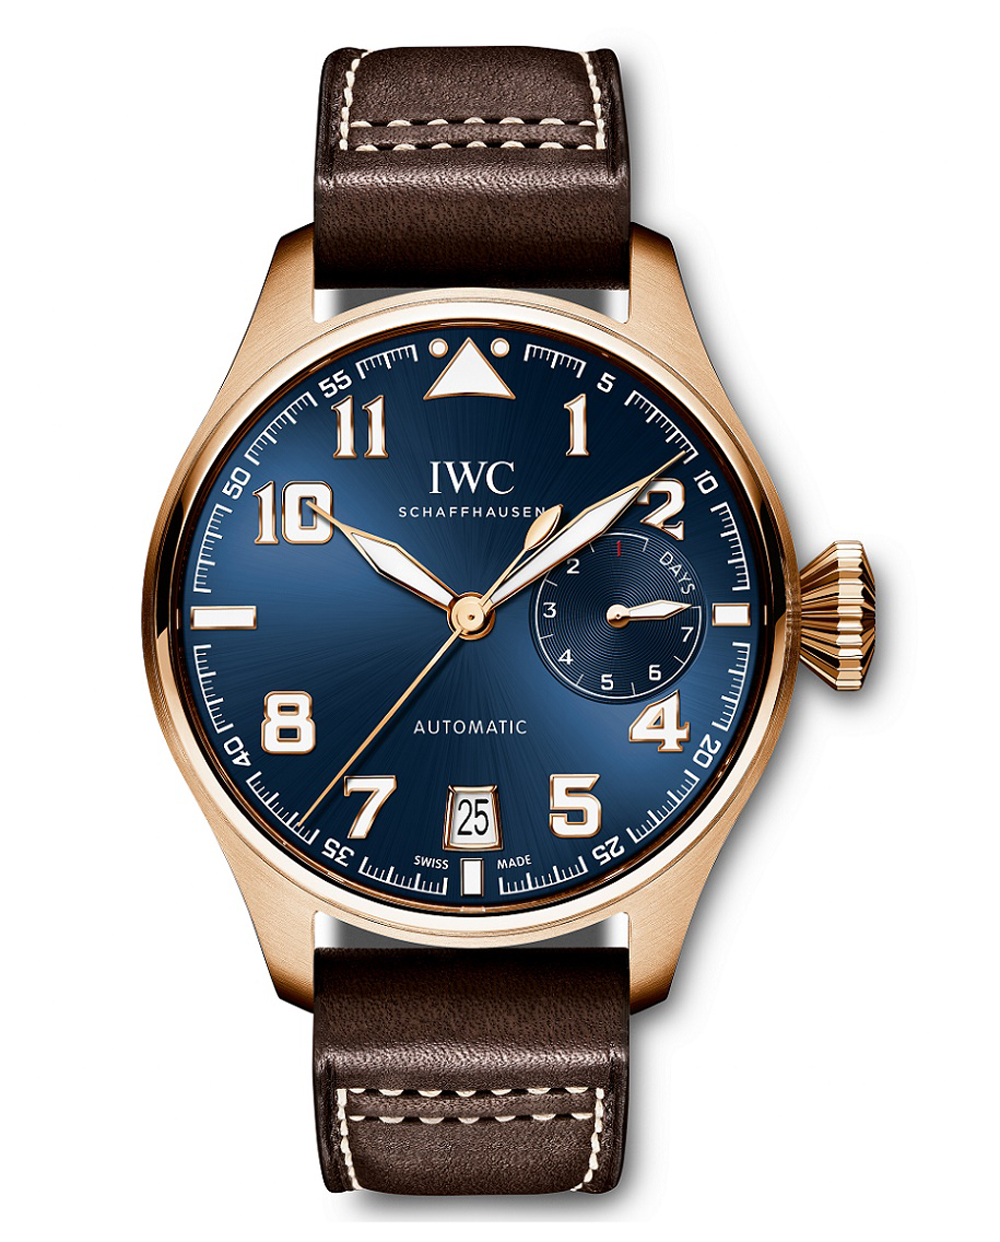 HANDOUT - First introduced in 2014 with a stainless steel case, the Big Pilot's Watch Edition ''Le Petit Prince'' (Ref. IW500909) from IWC Schaffhausen is now also available in a 18-carat red gold case. Limited to 250 watches, the timepiece has a 7-day power reserve and elegant sun-pattern finish. The back engraving shows the little prince in his neverending battle with the baobab tree seedlings, which, if allowed to take root, would split his tiny planet in pieces. With the Big PilotÕs Watch Edition ''Le Petit Prince'', IWC Schaffhausen pays tribute to one of the best-selling books in literary history, written by legendary writer, pilot and adventurer Antoine de Saint-ExupŽry. Since 2006, the Swiss luxury watch manufacturer has maintained a cordial partnership with Saint-ExupŽryÕs heirs and their charitable organization, the Antoine de Saint-ExupŽry Youth Foundation. (PHOTOPRESS/IWC)